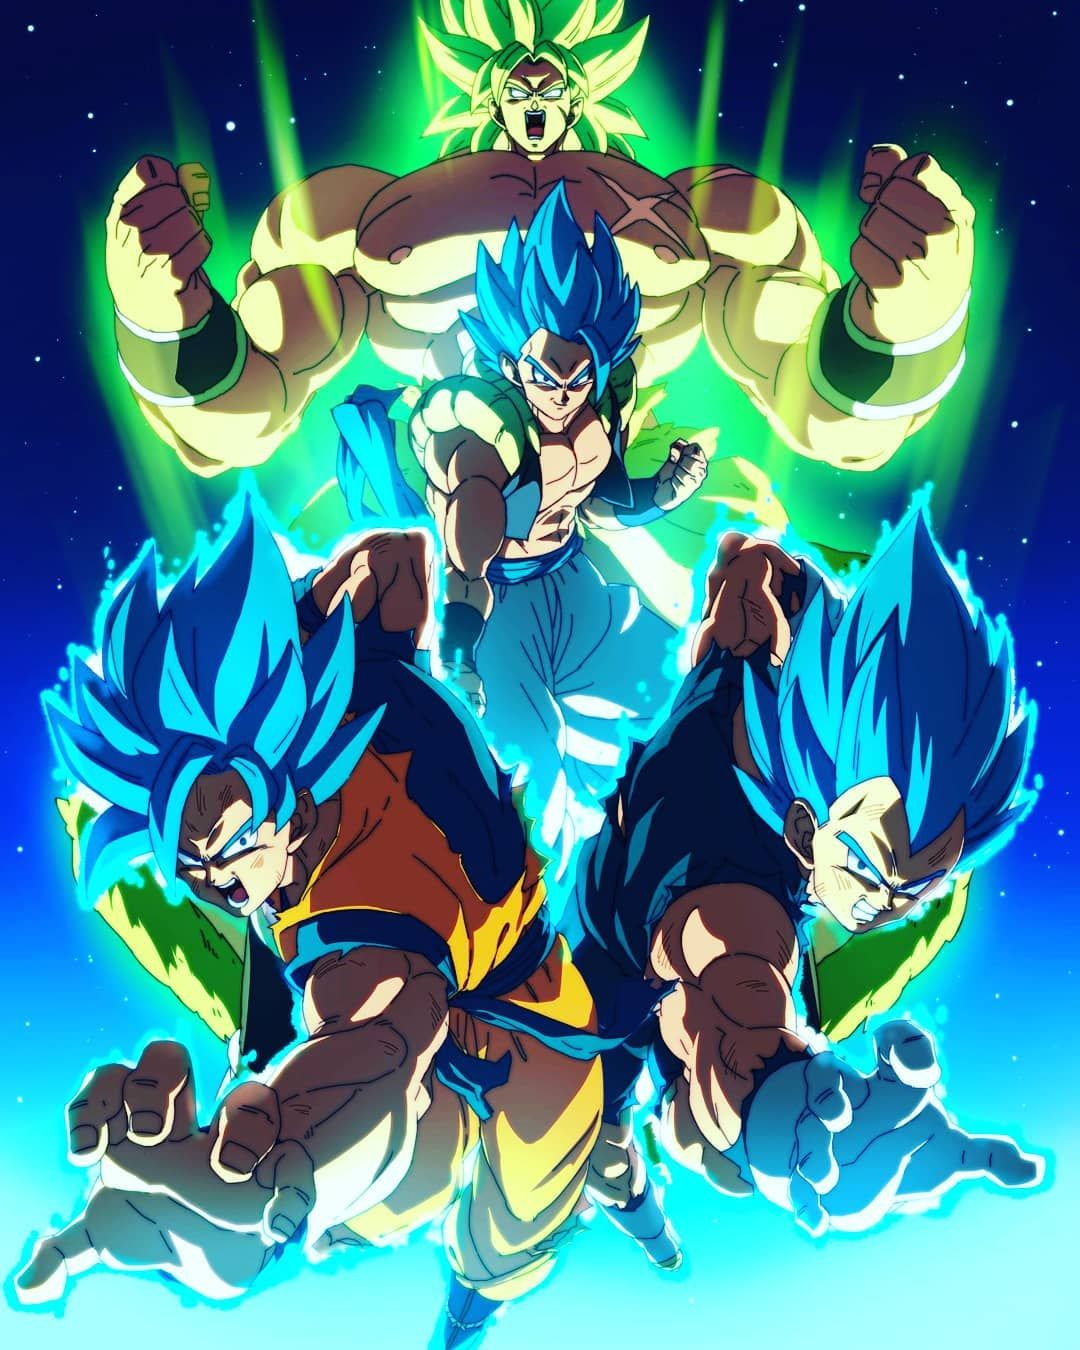 Dragon Ball Super Broly On Instagram Dragon Ball Super Broly Fanart Poster Art Anime Dragon Ball Super Dragon Ball Super Dragon Ball Goku